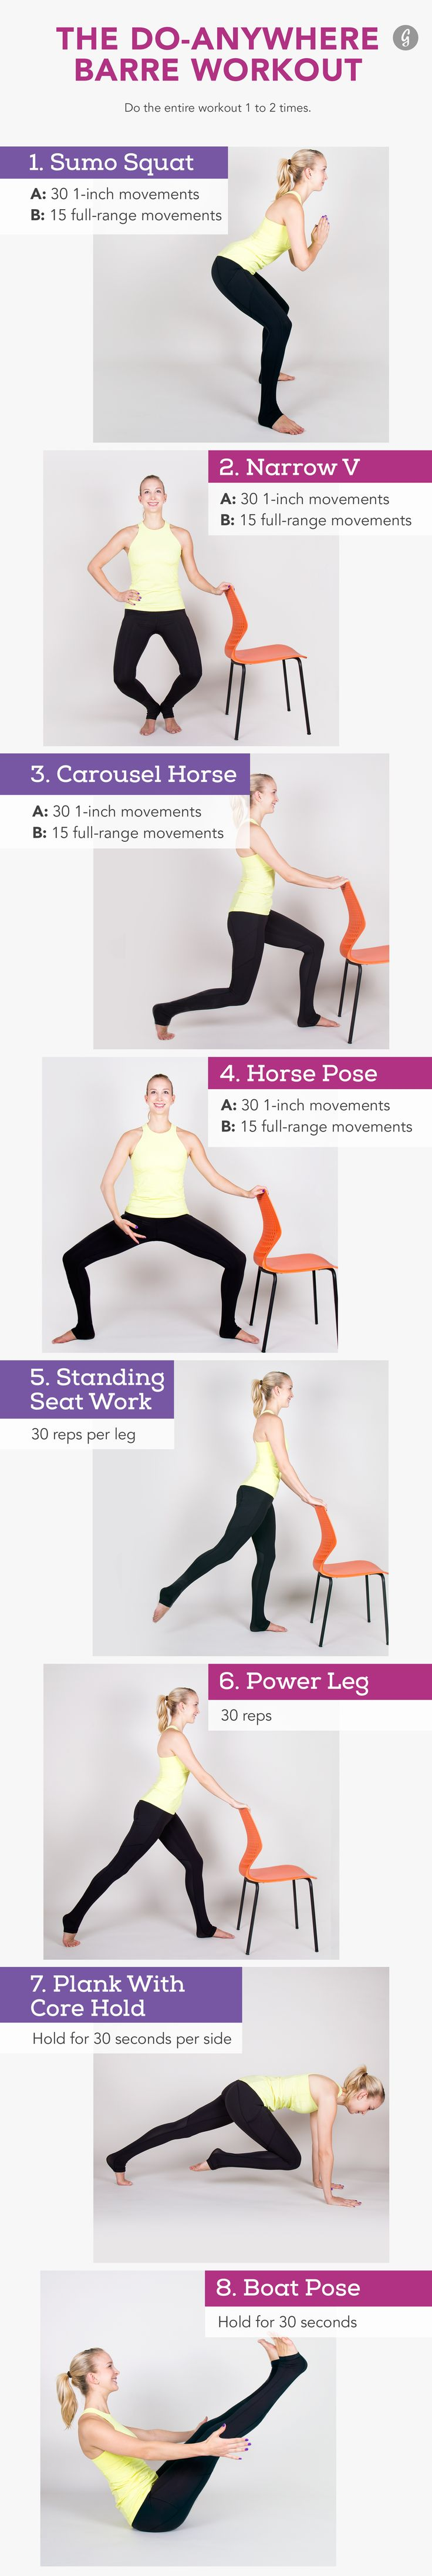 The 15-Minute Barre Workout You Can Do at Home #barre #workout #fitness